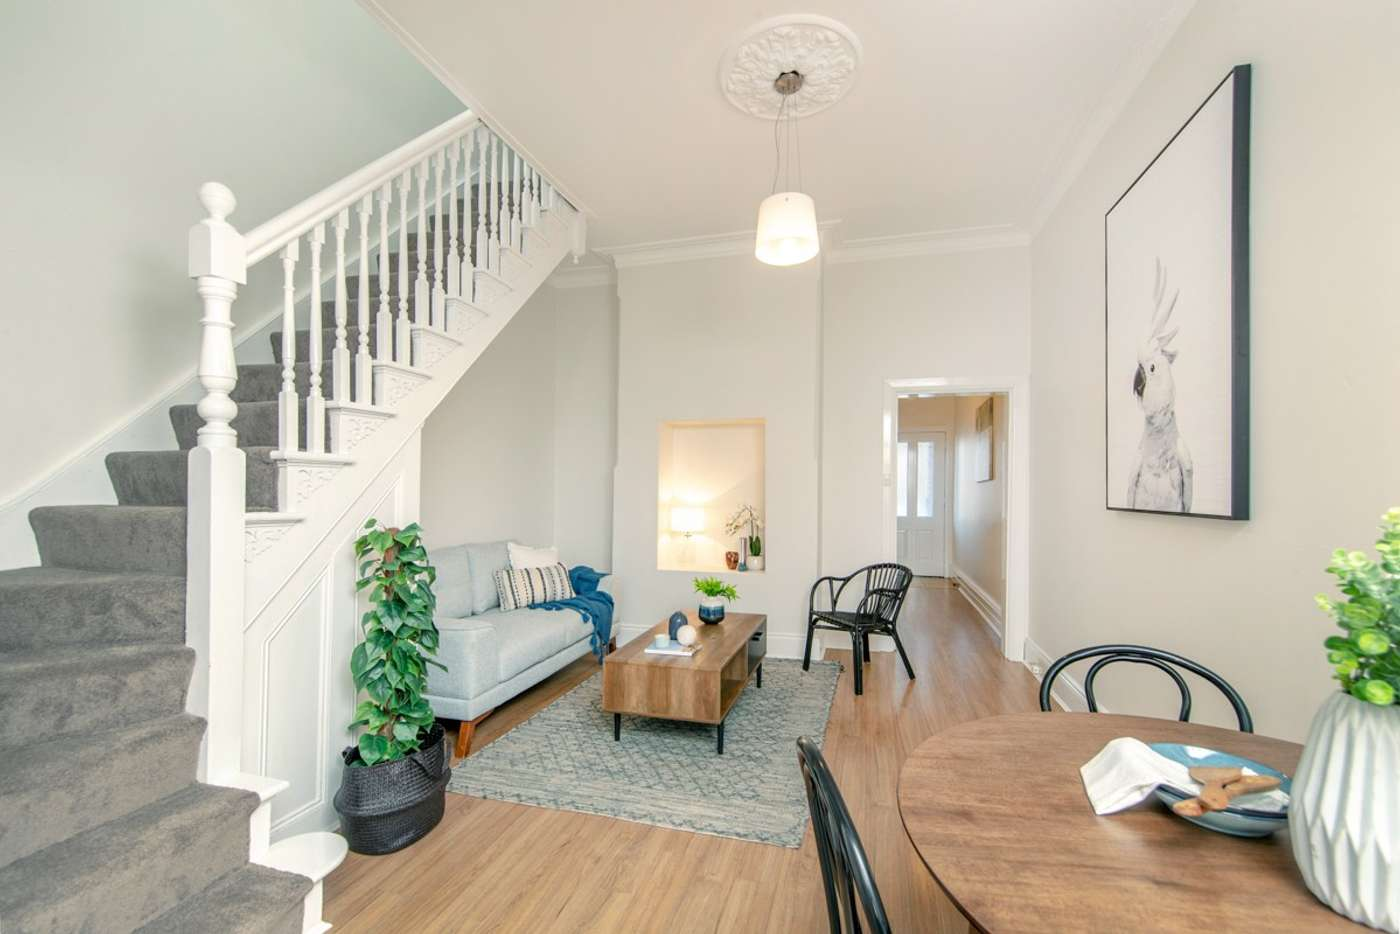 Fifth view of Homely house listing, 27 Bruce Street, Cooks Hill NSW 2300